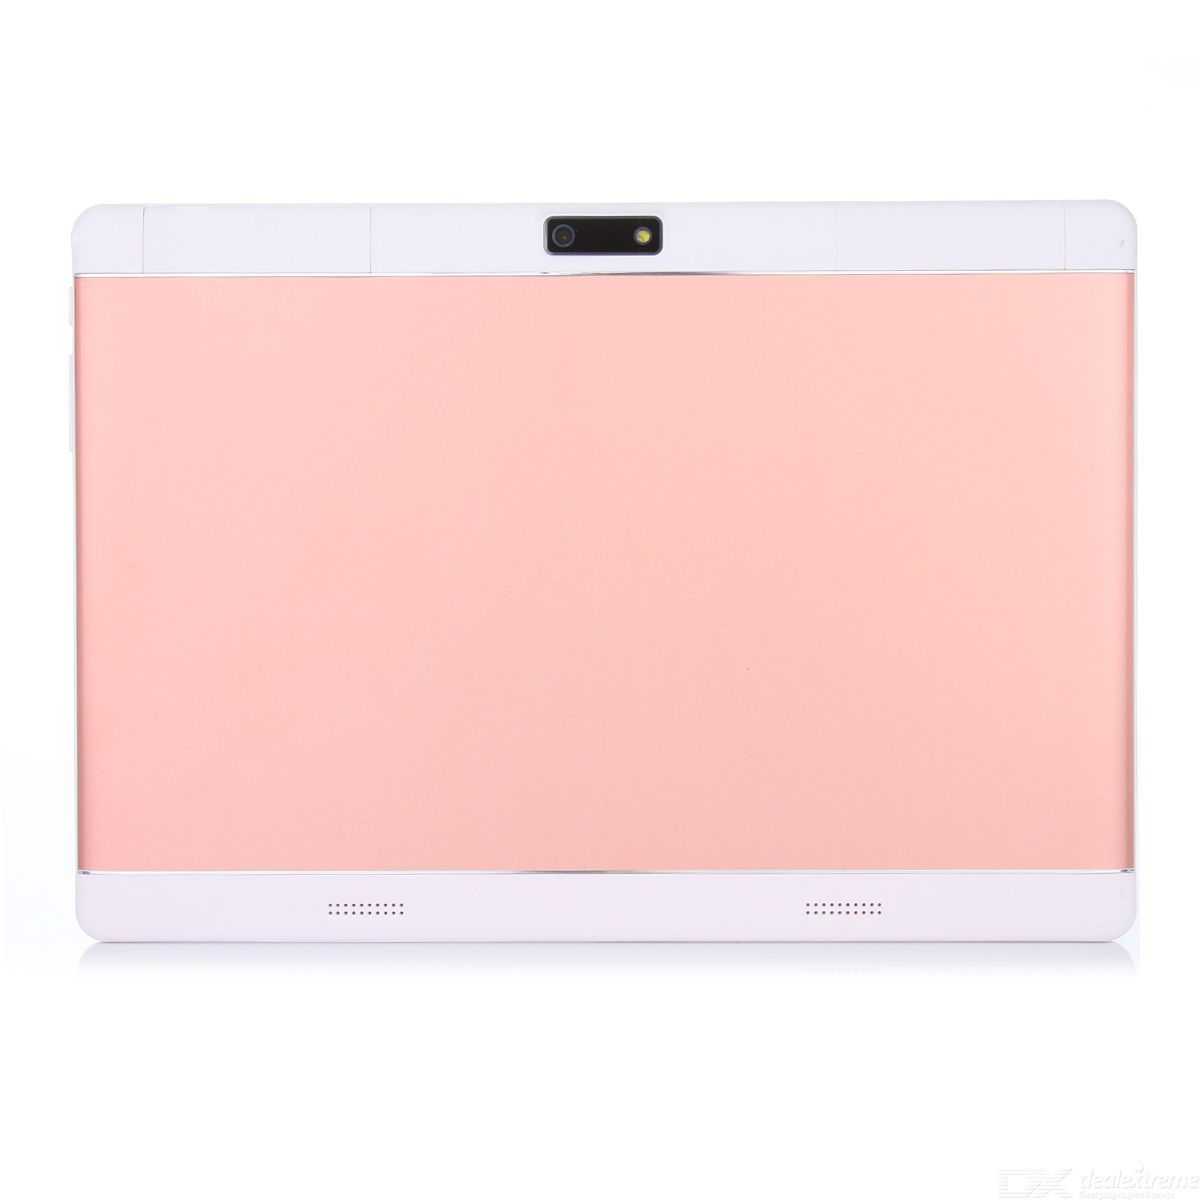 101-Inches-Android-60-Quad-Core-3G-Tablet-PC-With-16GB-Memory